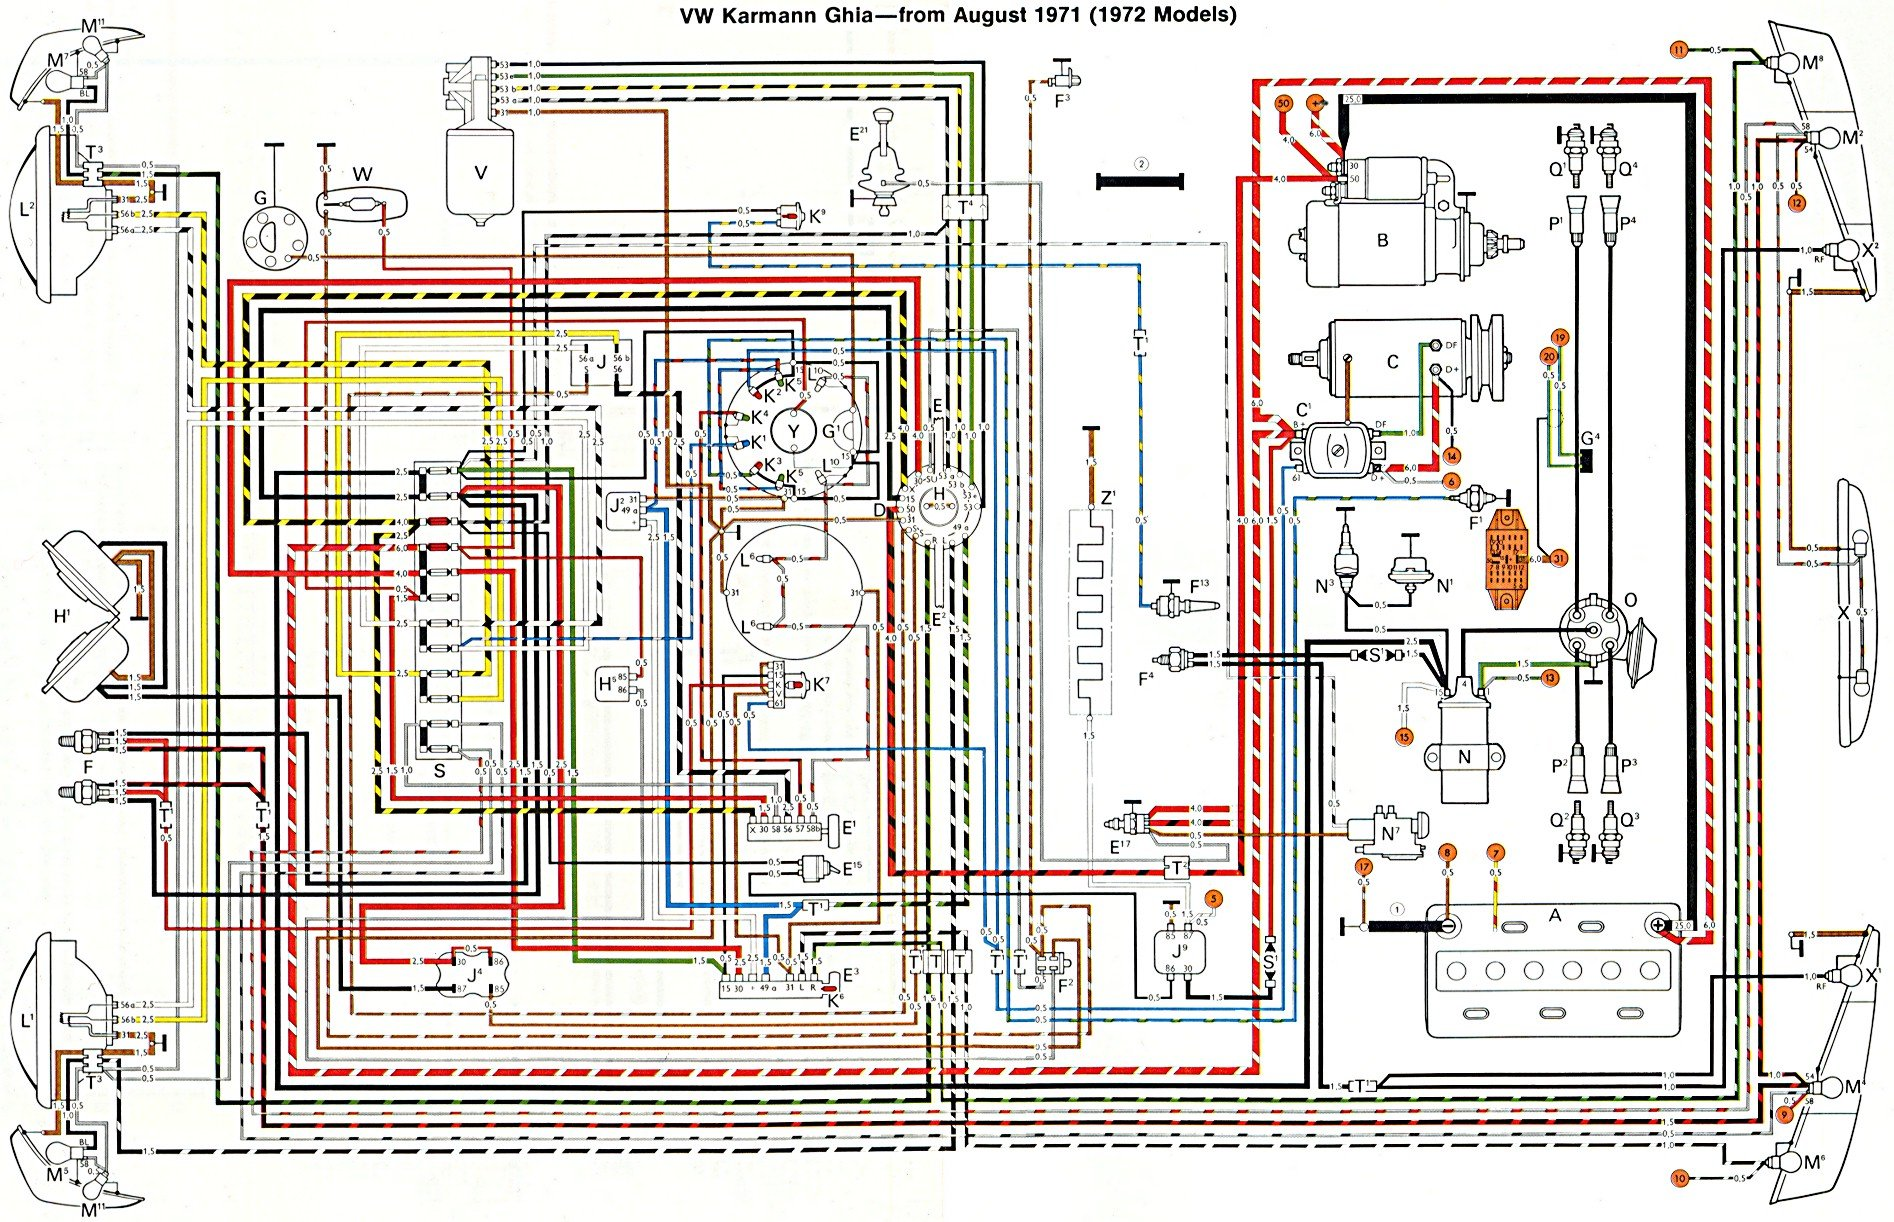 TheSamba Karmann Ghia Wiring Diagrams – Diagram Wiring